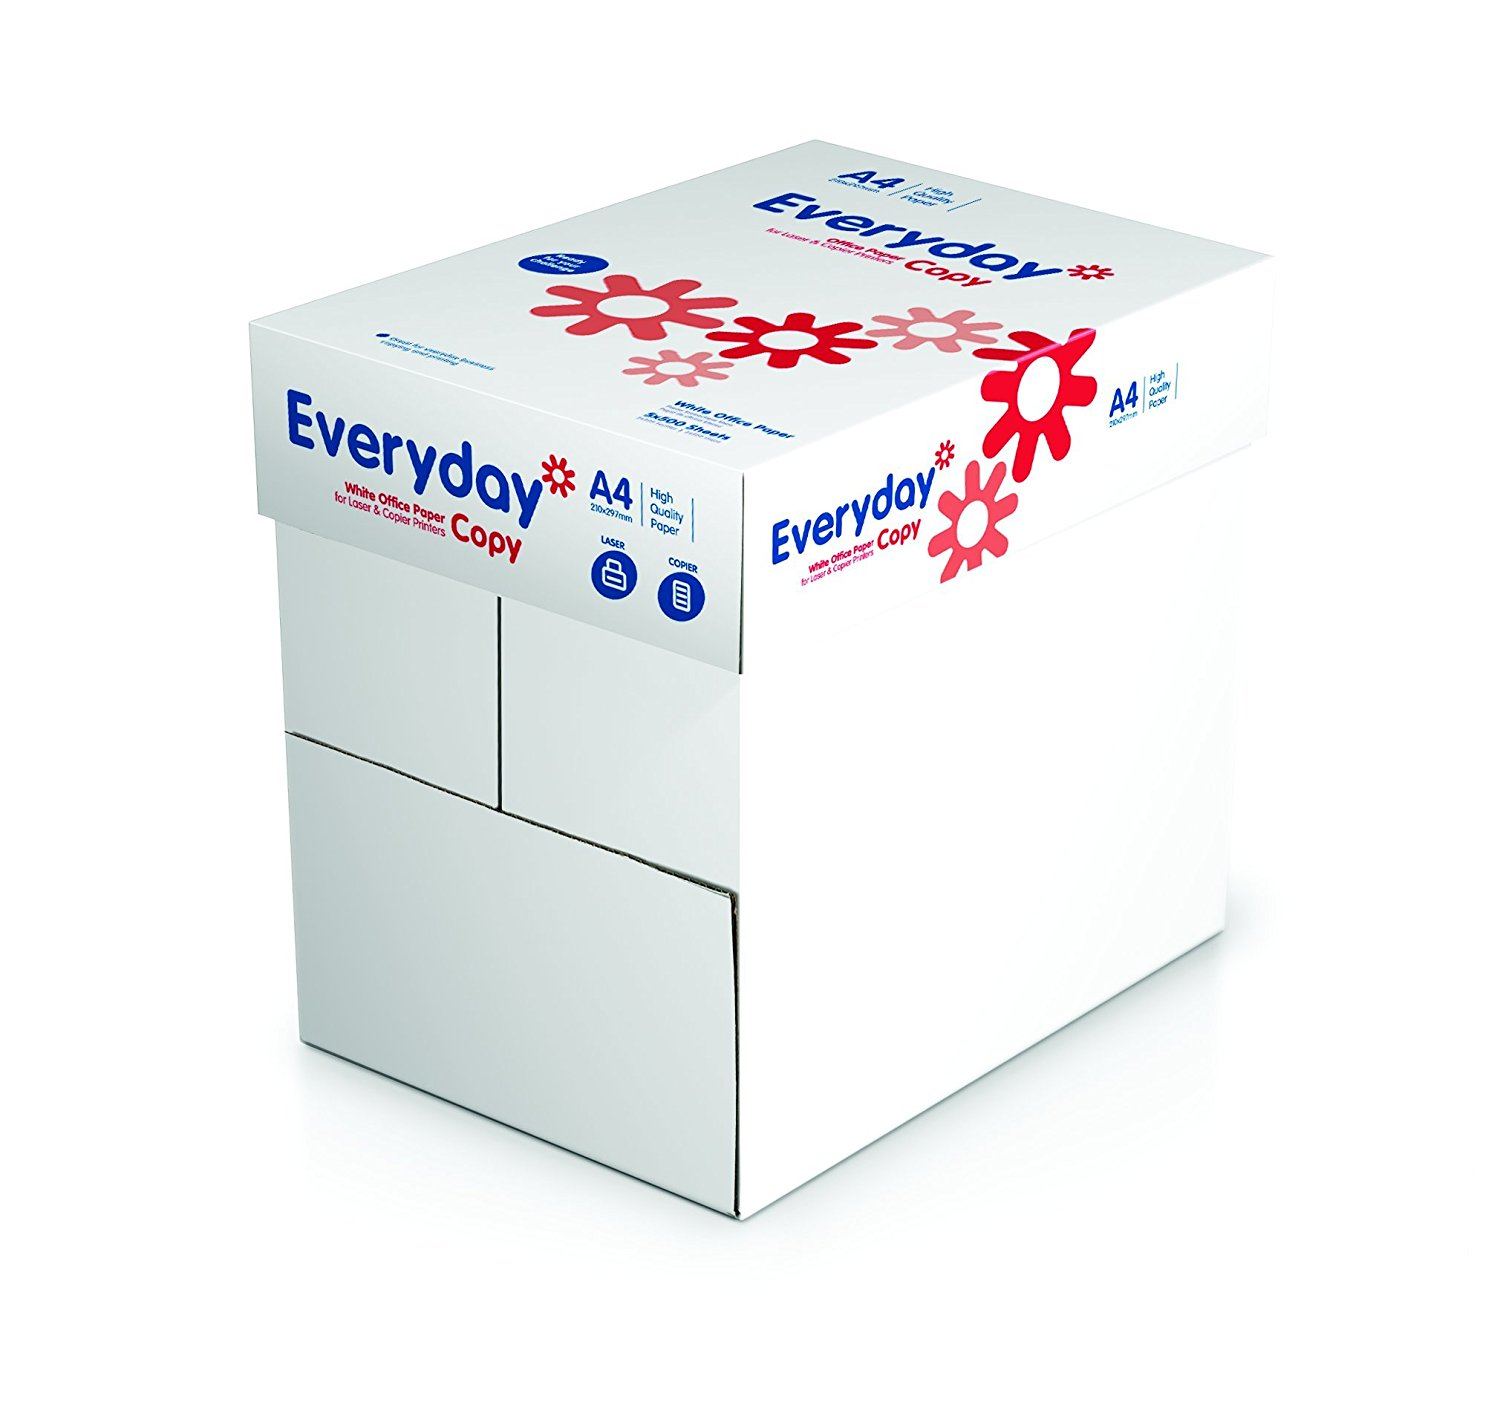 Portucel Everyday Paper 80gsm A4 BX10 reams